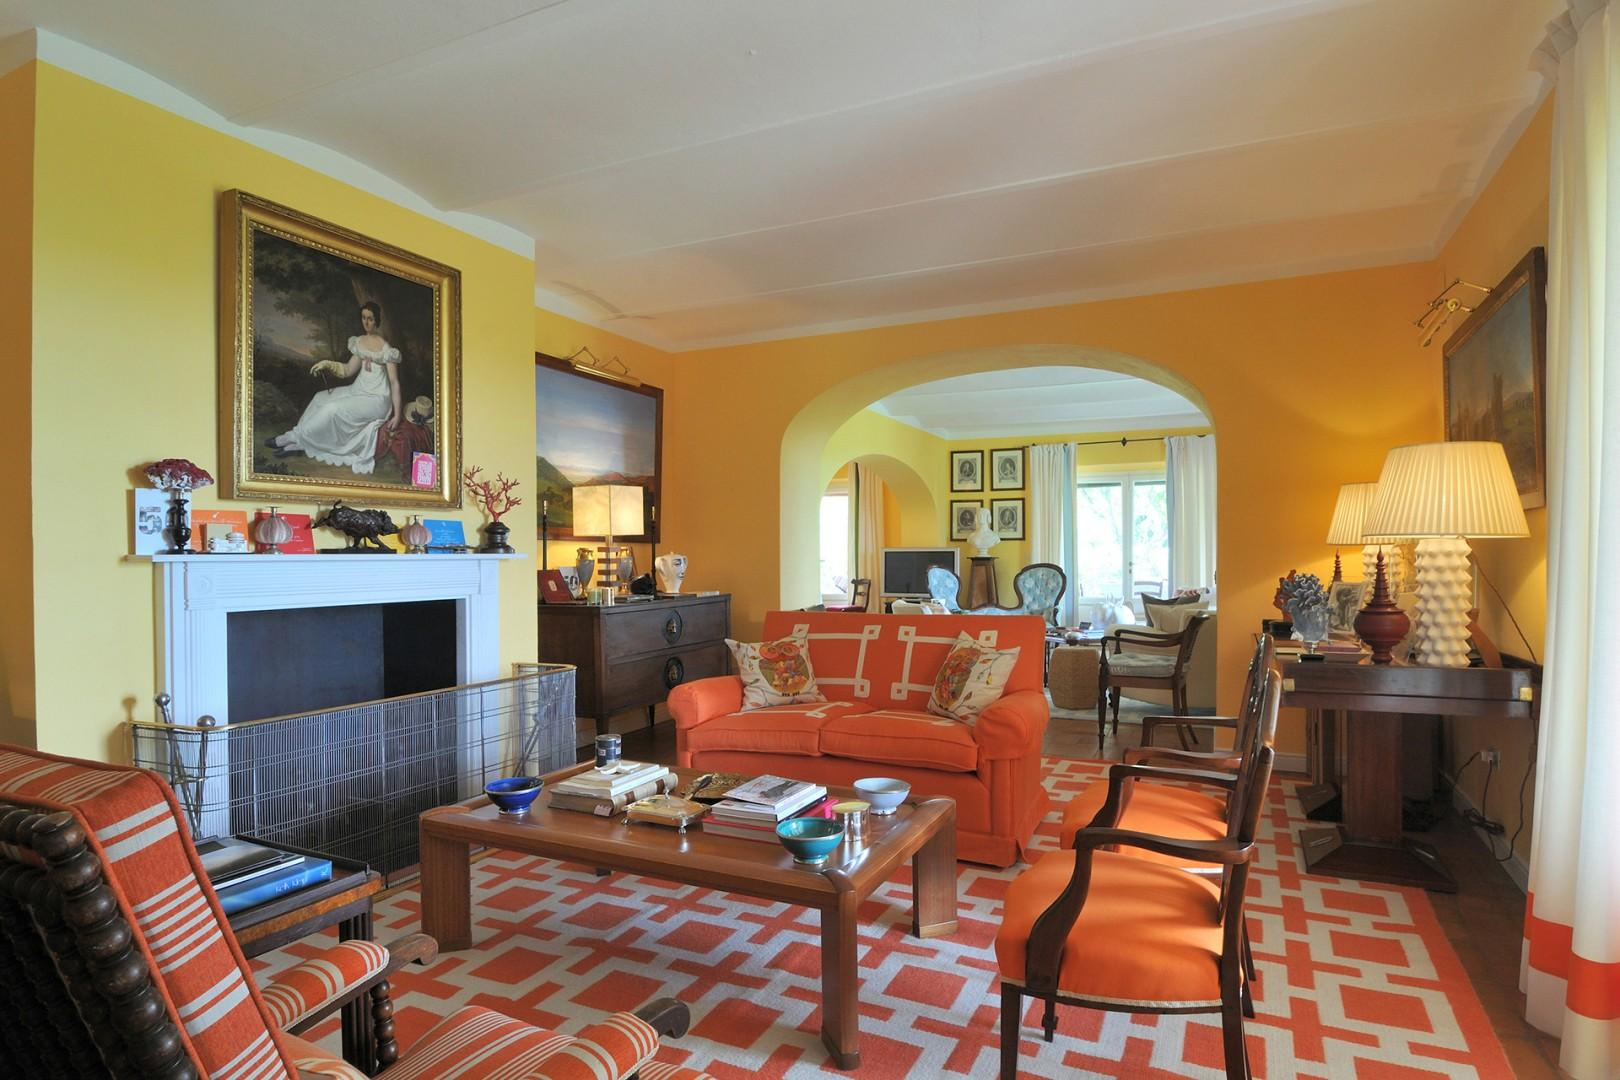 A double living room with working fireplace provides a wonderful atmosphere for enjoyment.